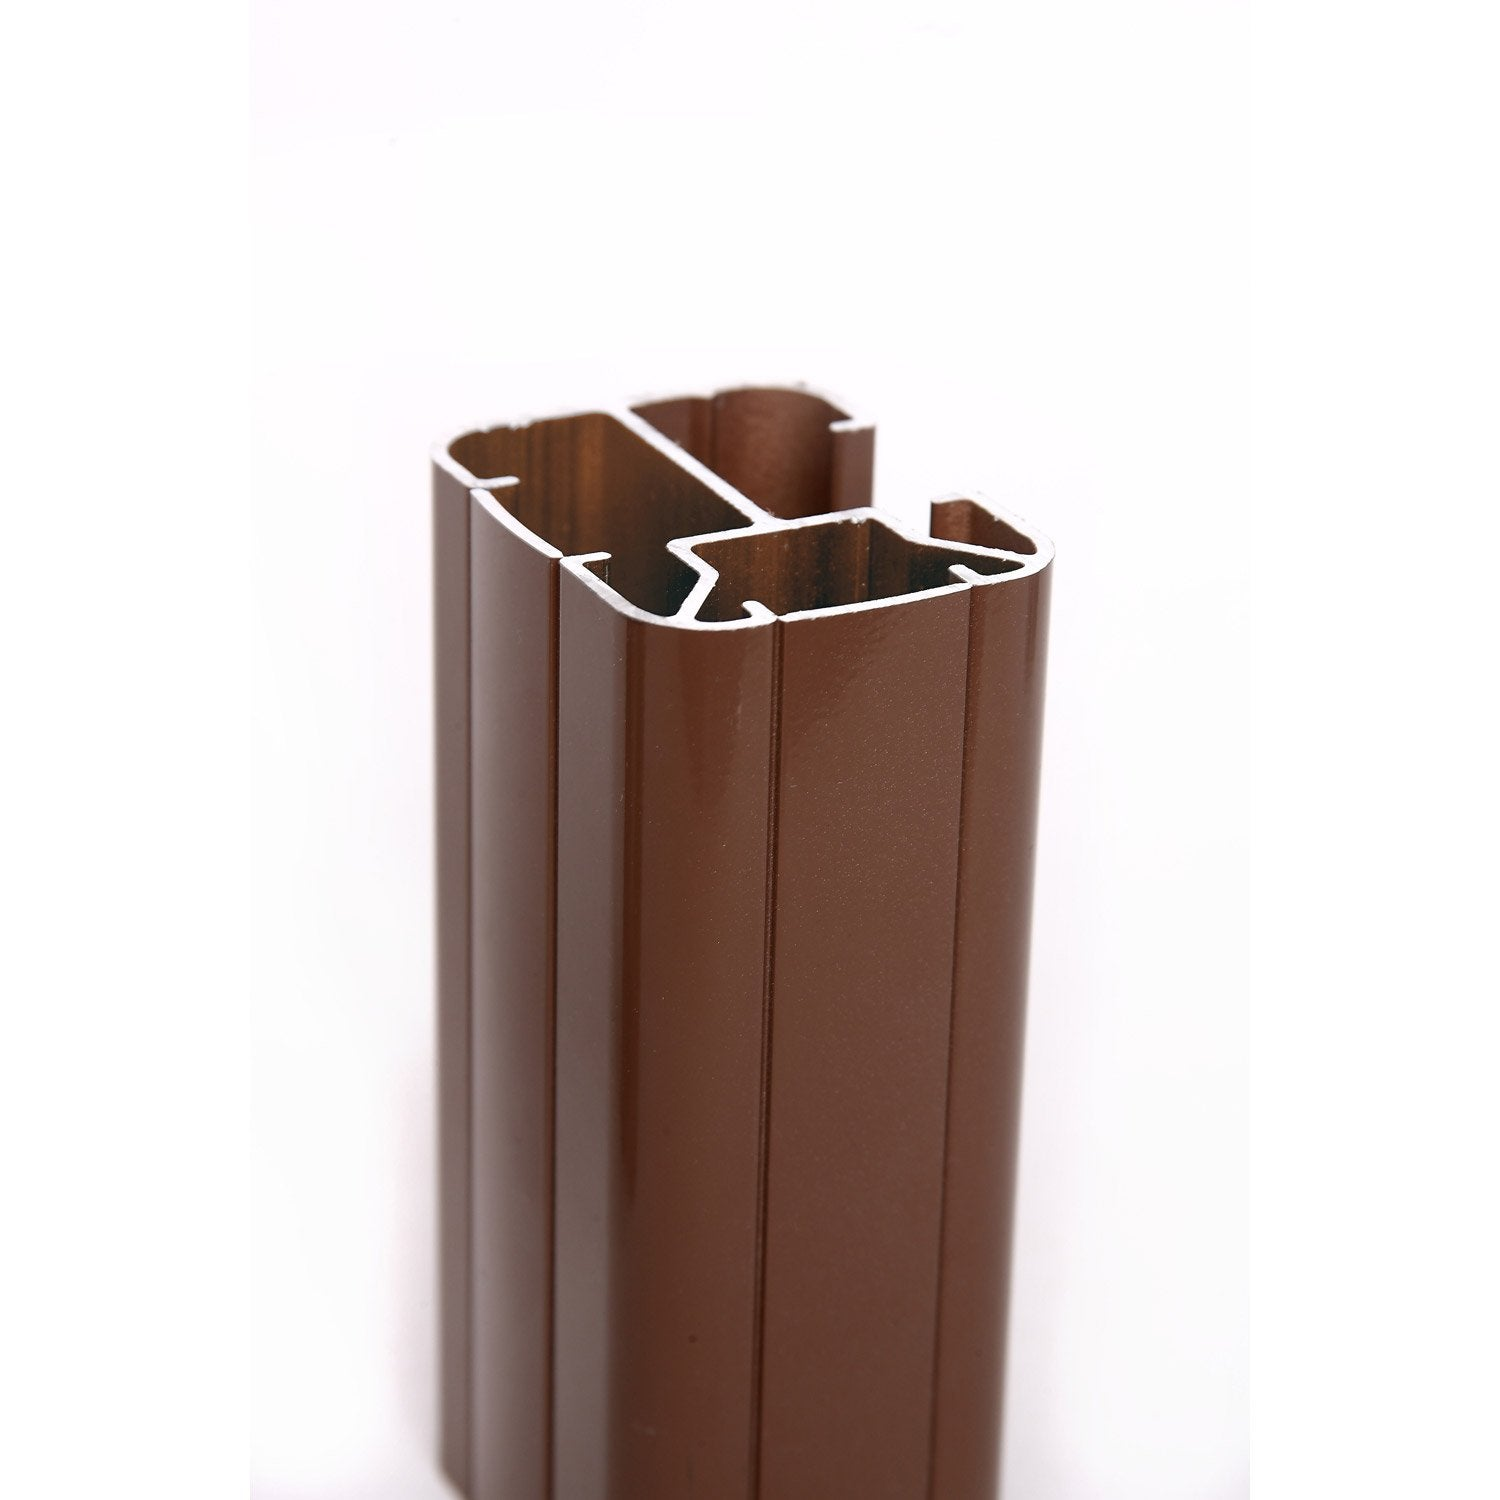 Poteau en h marron en aluminium leroy merlin for Portail pvc marron